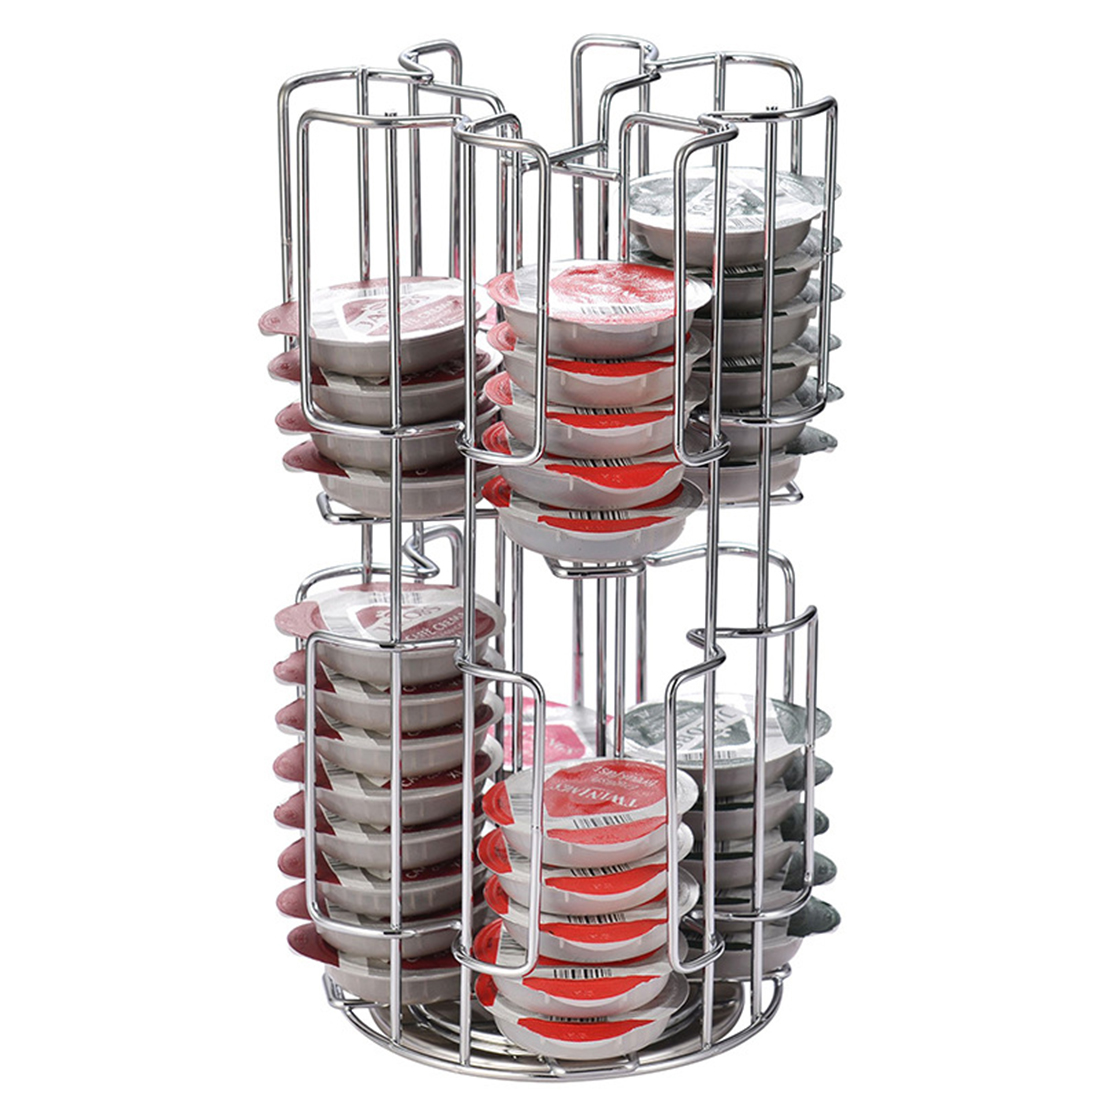 2020 New Simple Style Rotating Capsule Coffee Pods Holder Storage Rack For 64 Tassimo Capsules